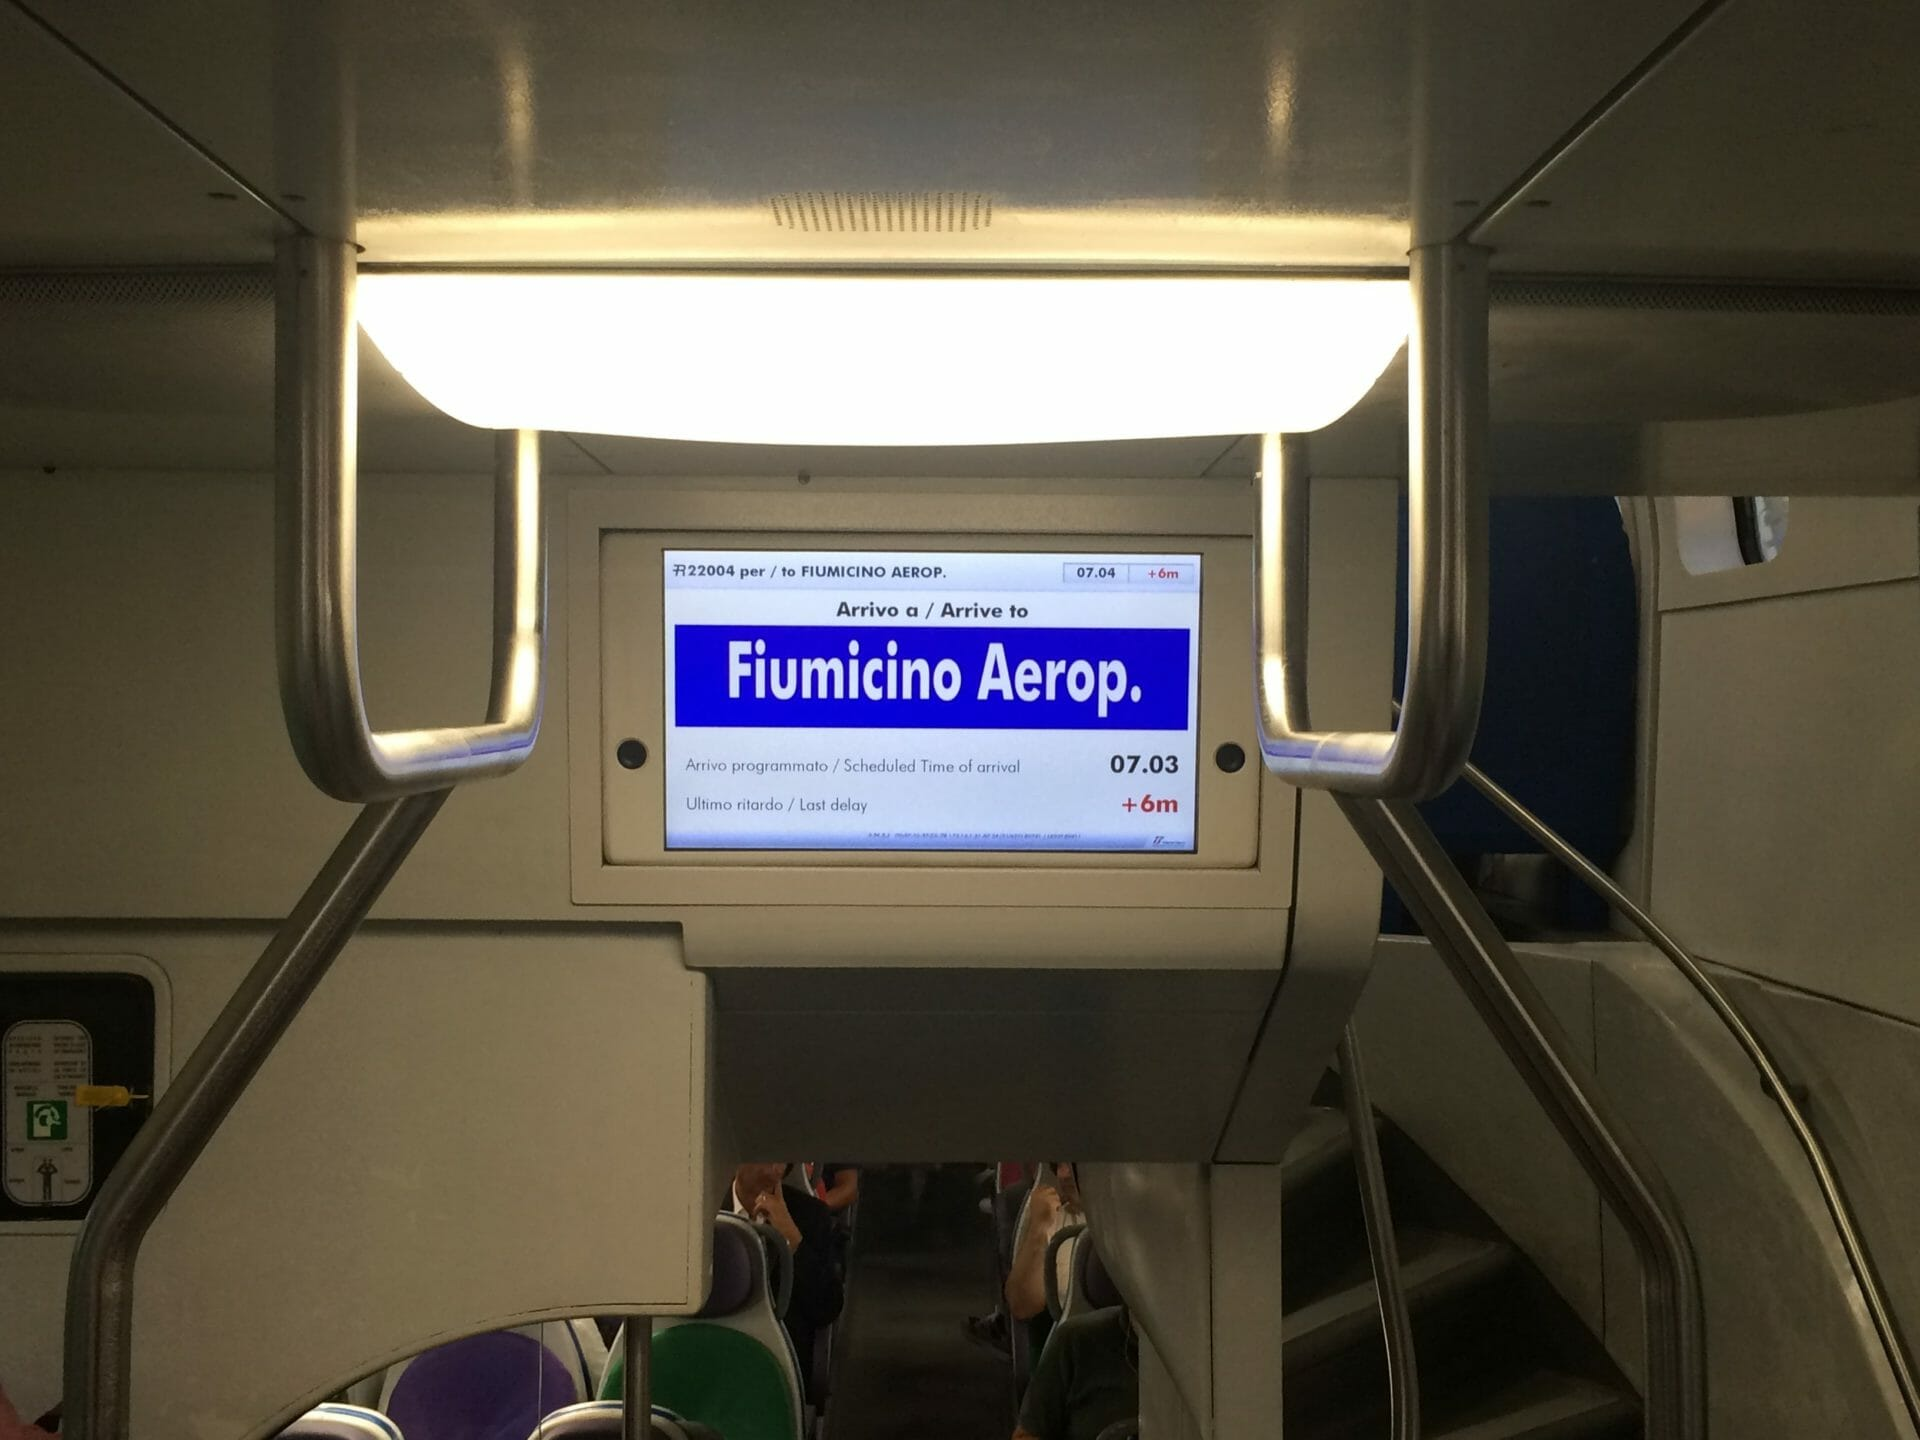 Rome international airports transport Fiuminico